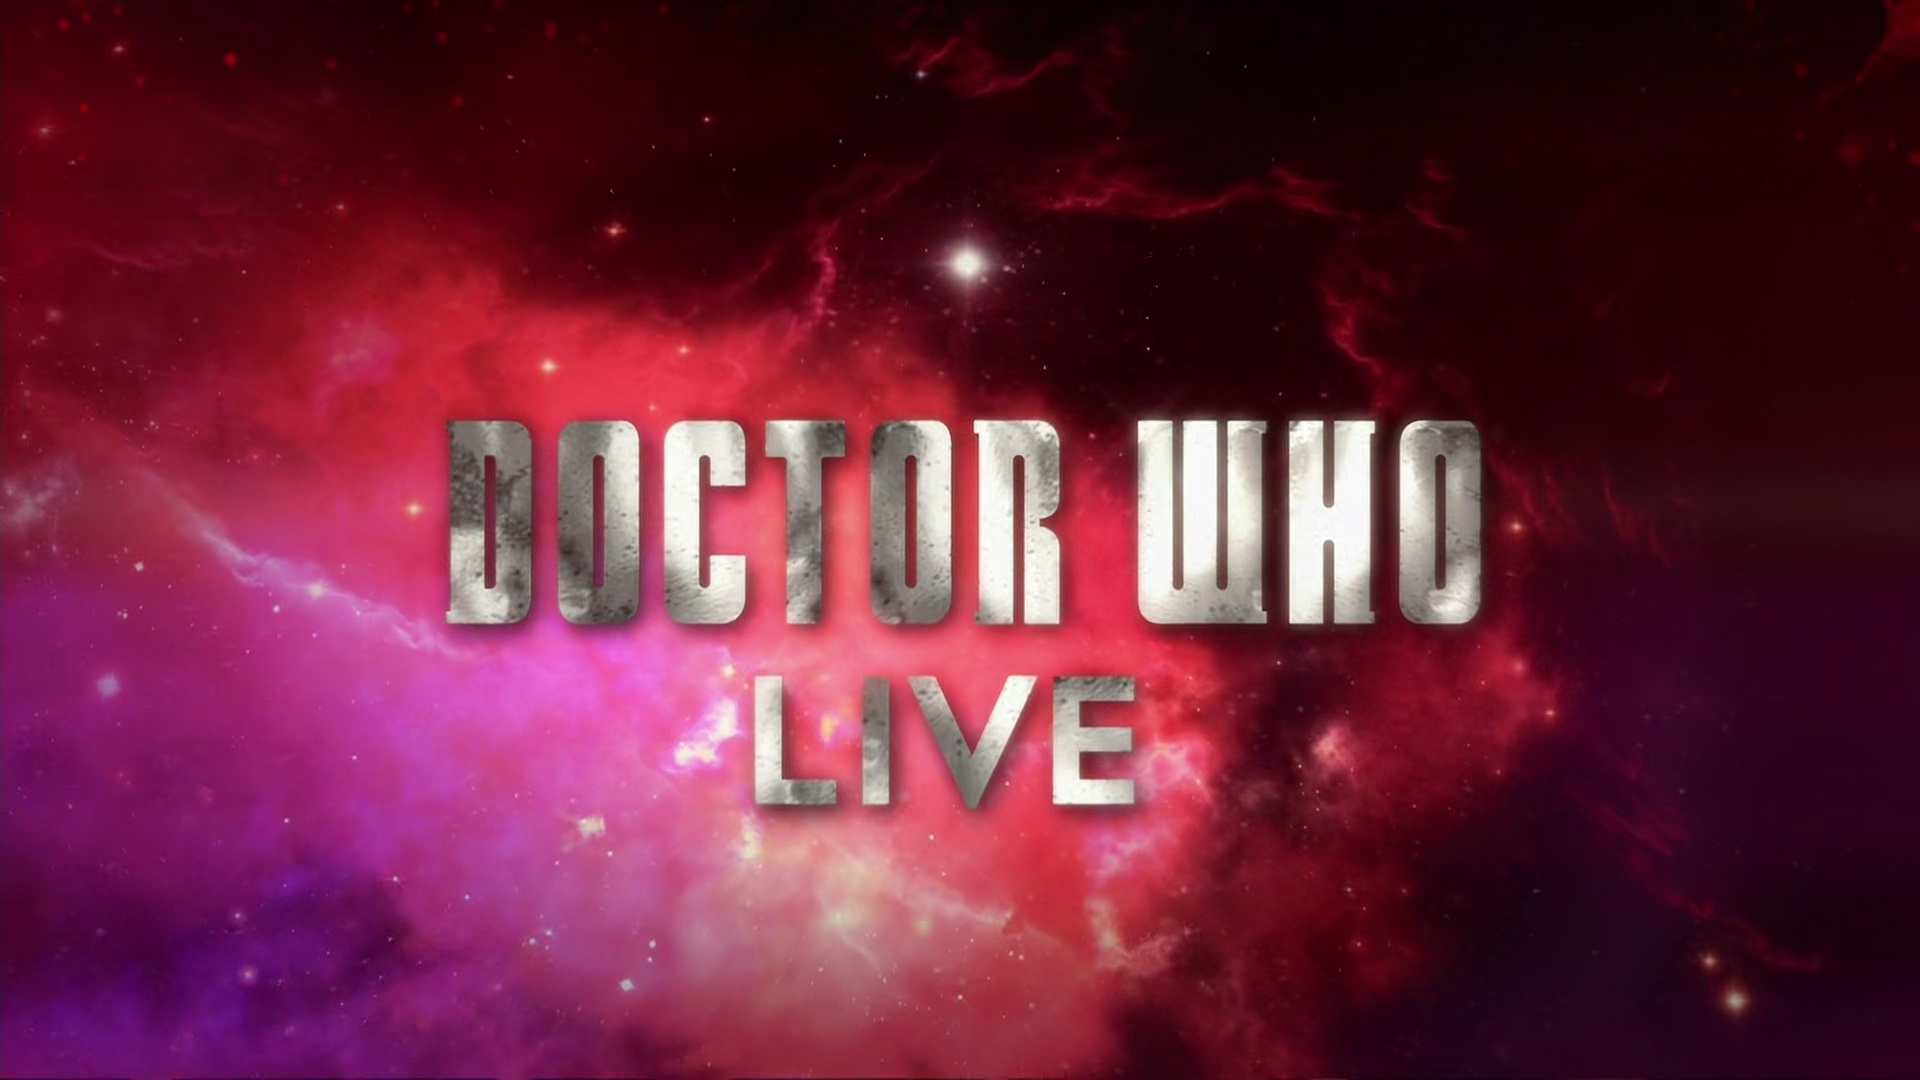 File:Doctor Who Live Title Card.jpg